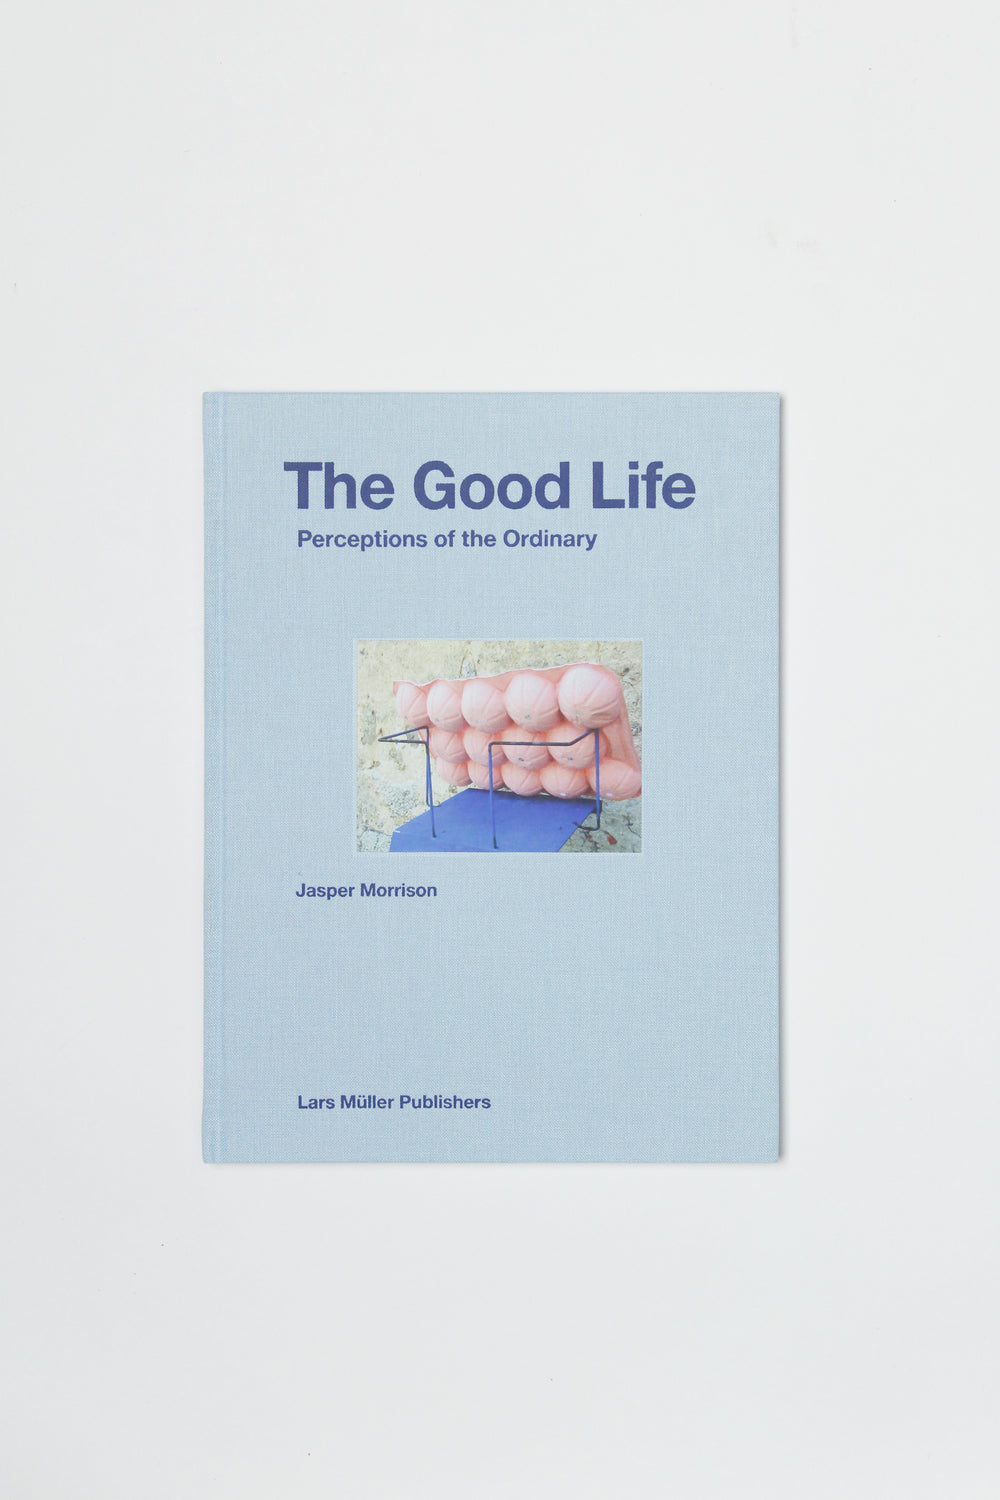 The Good Life, Perceptions of the Ordinary